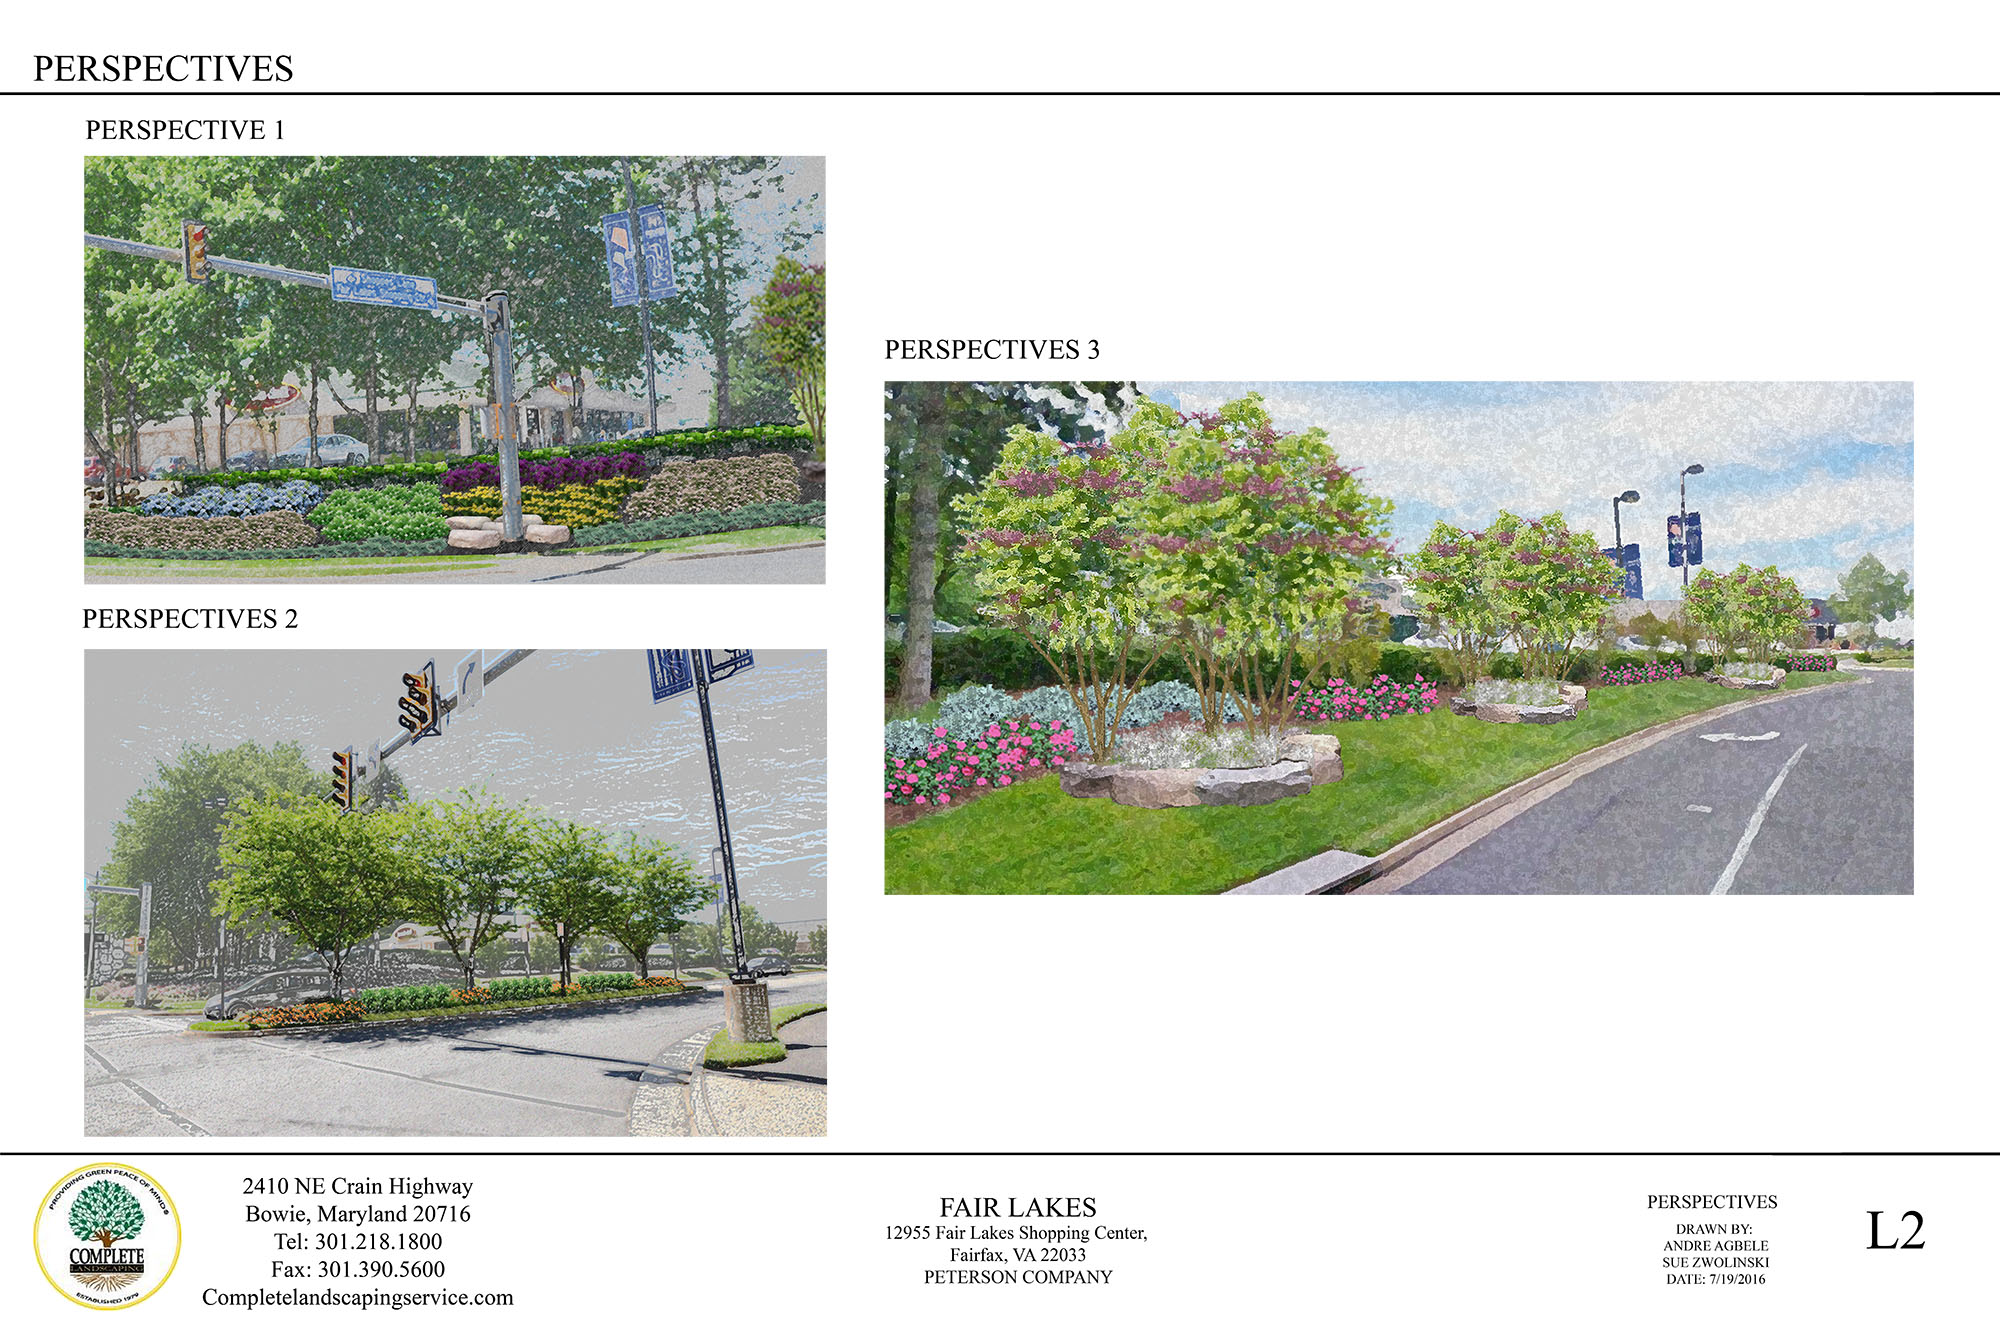 Commercial Landscape Design Perspective Drawings